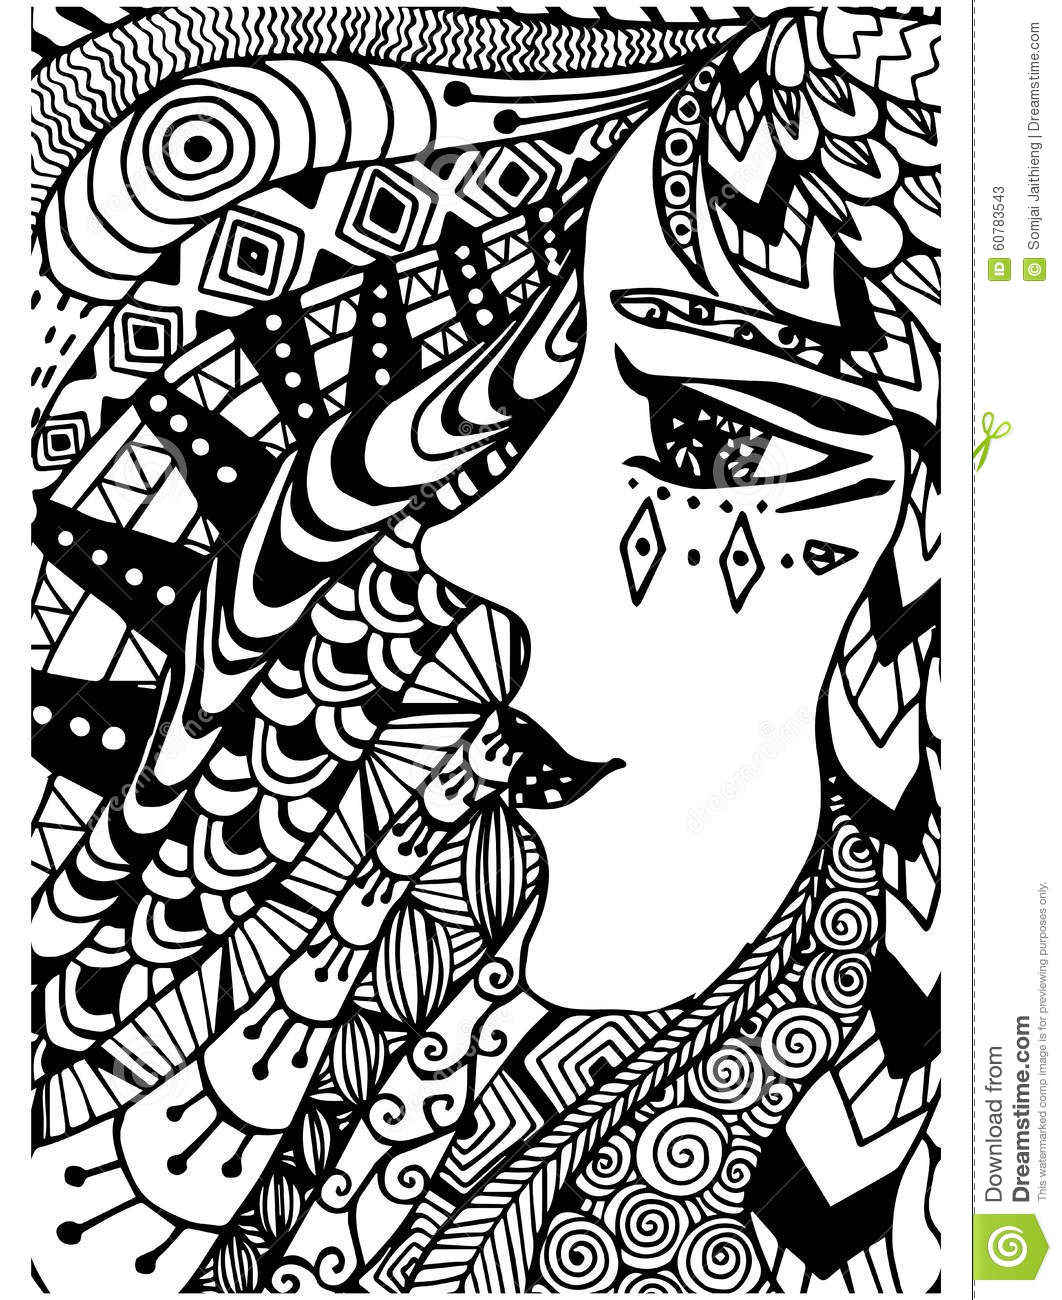 Pattern For Coloring Book Ethnicwoman Retro Doodle Tribal Design